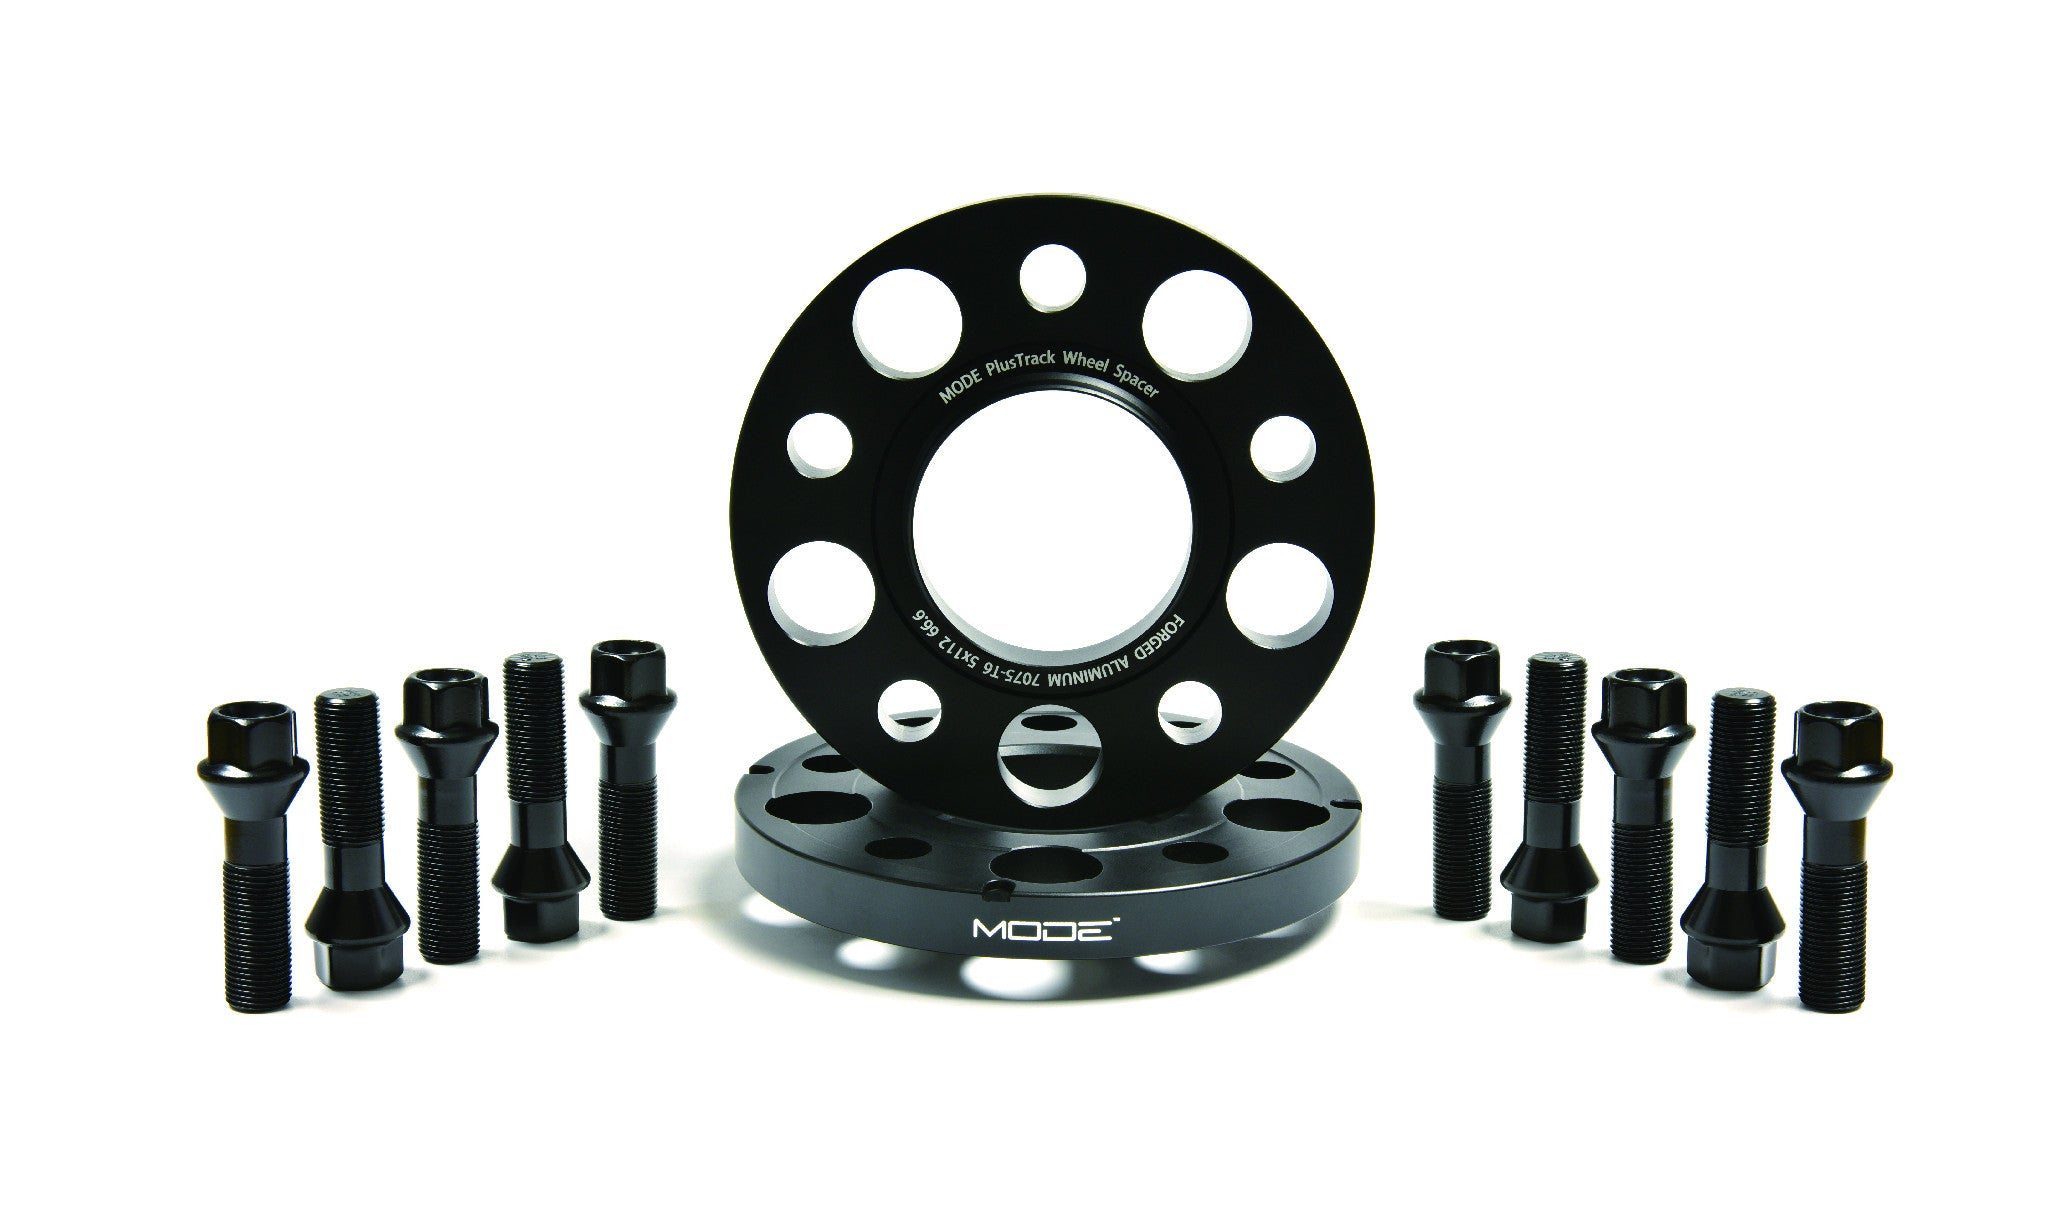 MODE PlusTrack Wheel Spacer Kit 18mm AUDI - MODE Auto Concepts